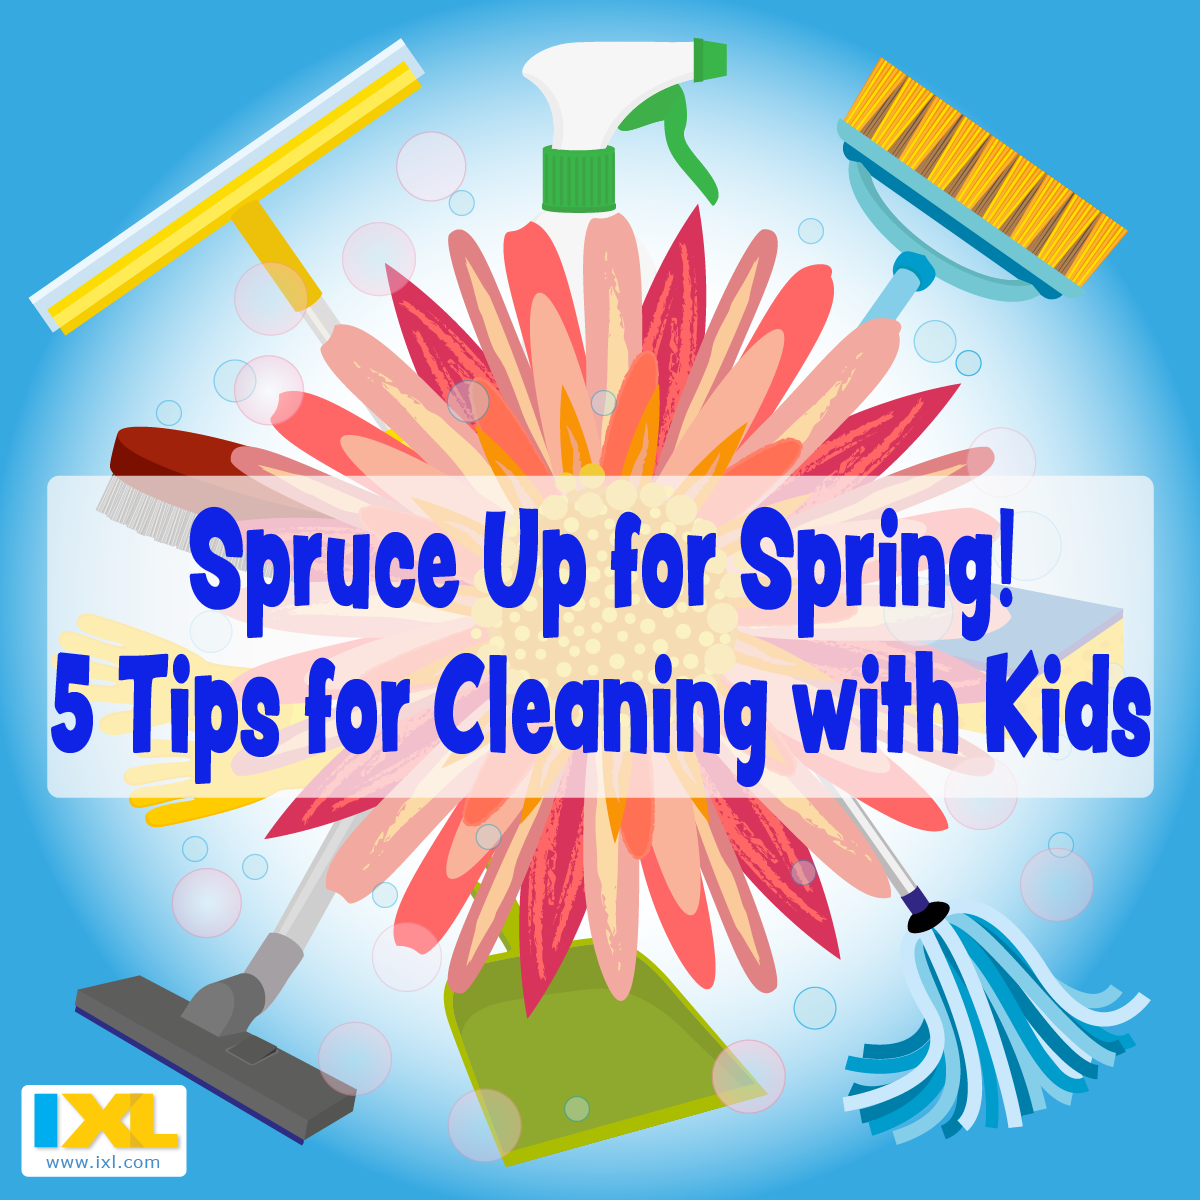 Spruce Up for Spring! 5 Tips for Cleaning with Kids